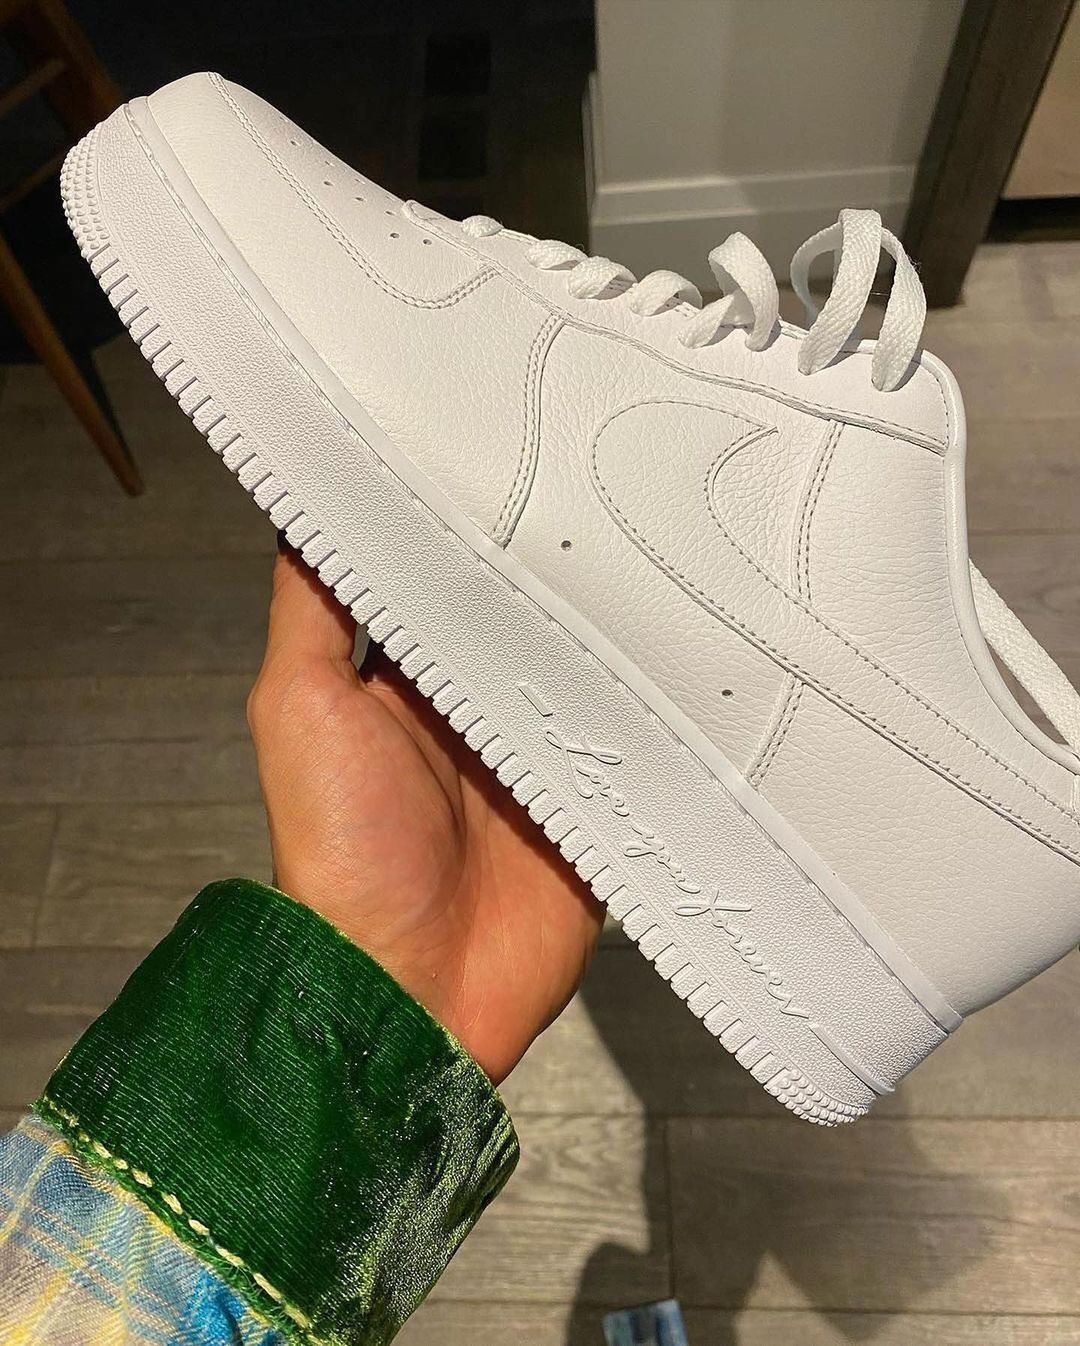 Images of a Drake X Nike Air Force 1 Collaboration Emerge